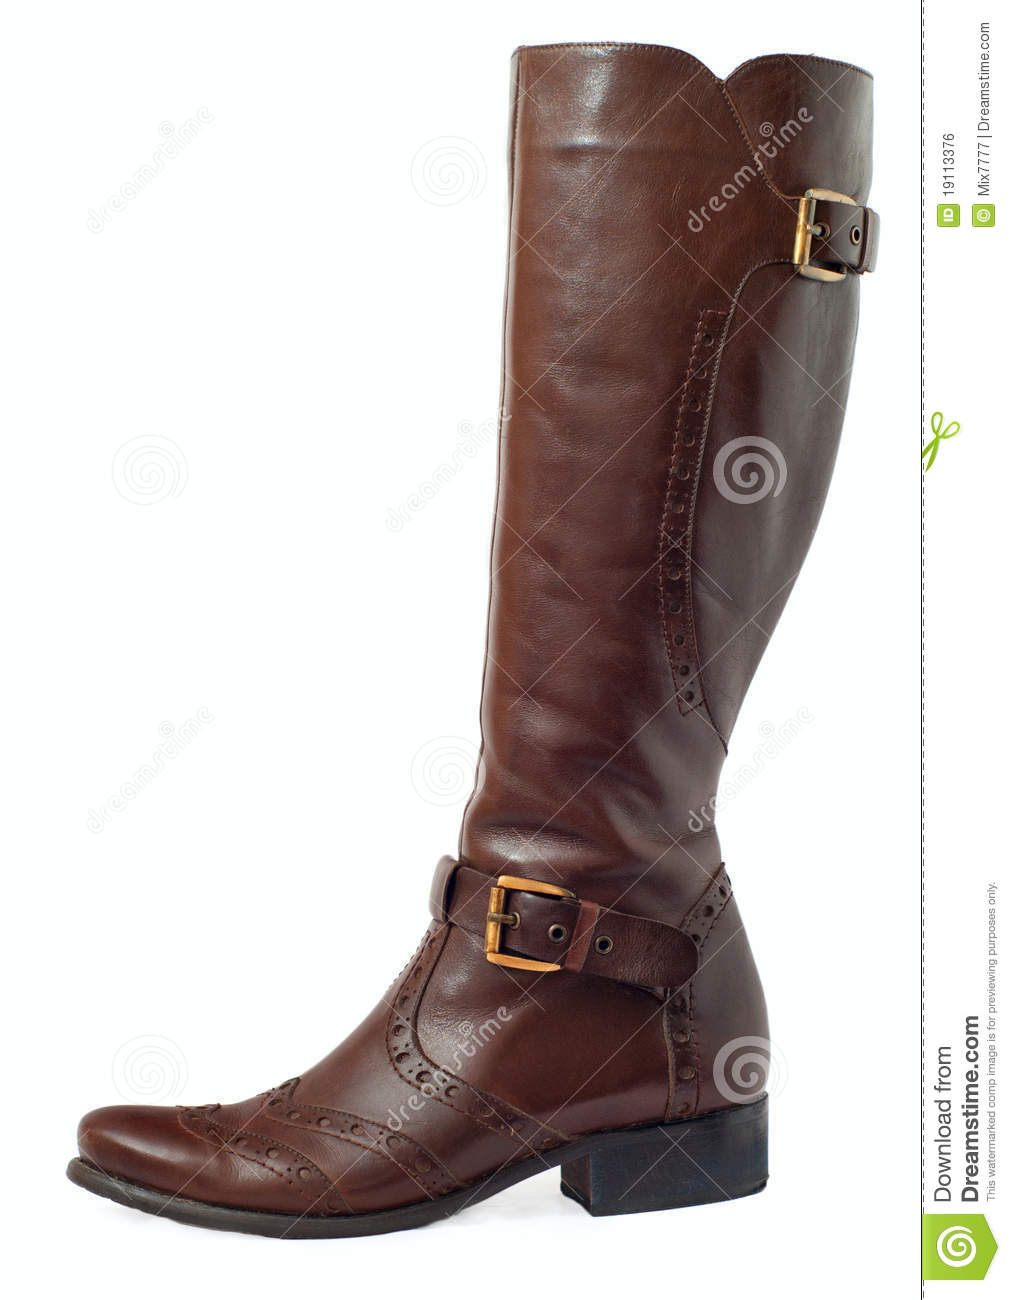 Leather Boots Women 7v0tqnV3